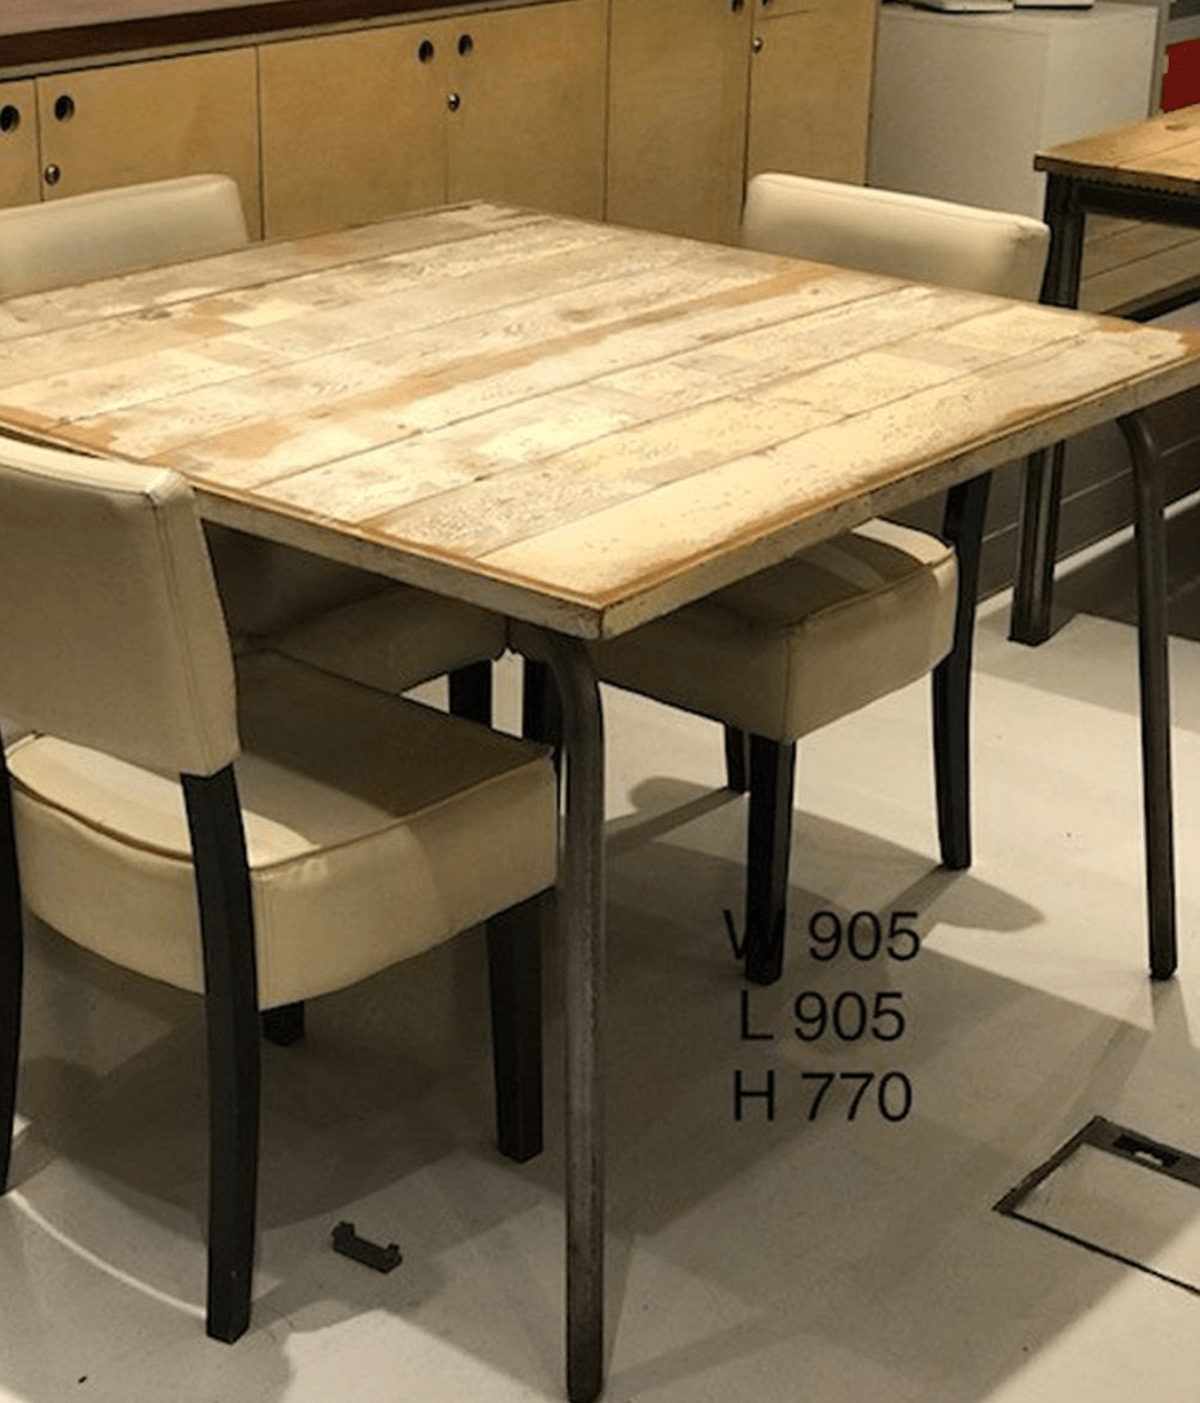 Long Dining Table For Sale Secondhand Hotel Furniture Dining Tables Industrial